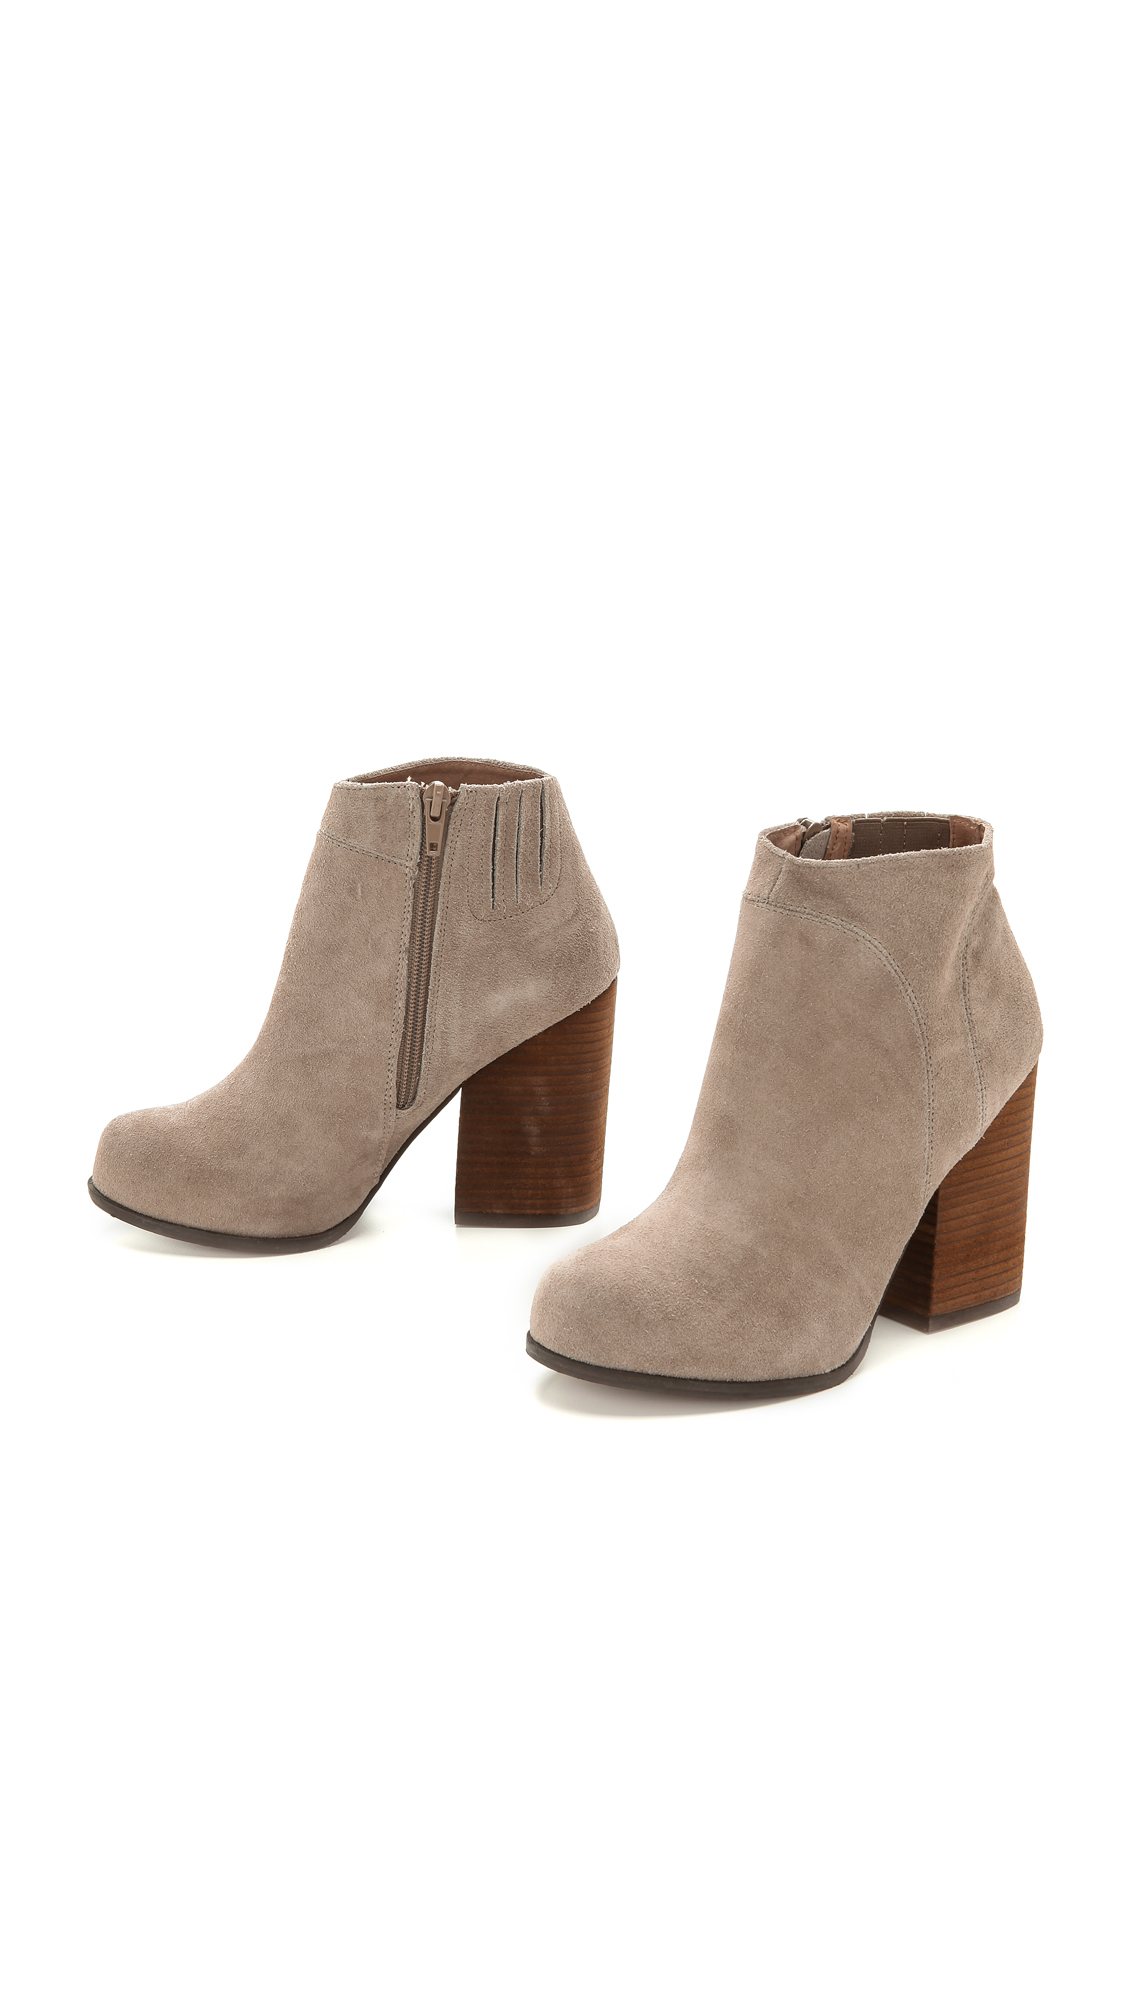 Stuart Weitzman Designer Shoes at up to 90% off retail price! Discover over 25, brands of hugely discounted clothes, handbags, shoes and accessories at thredUP.